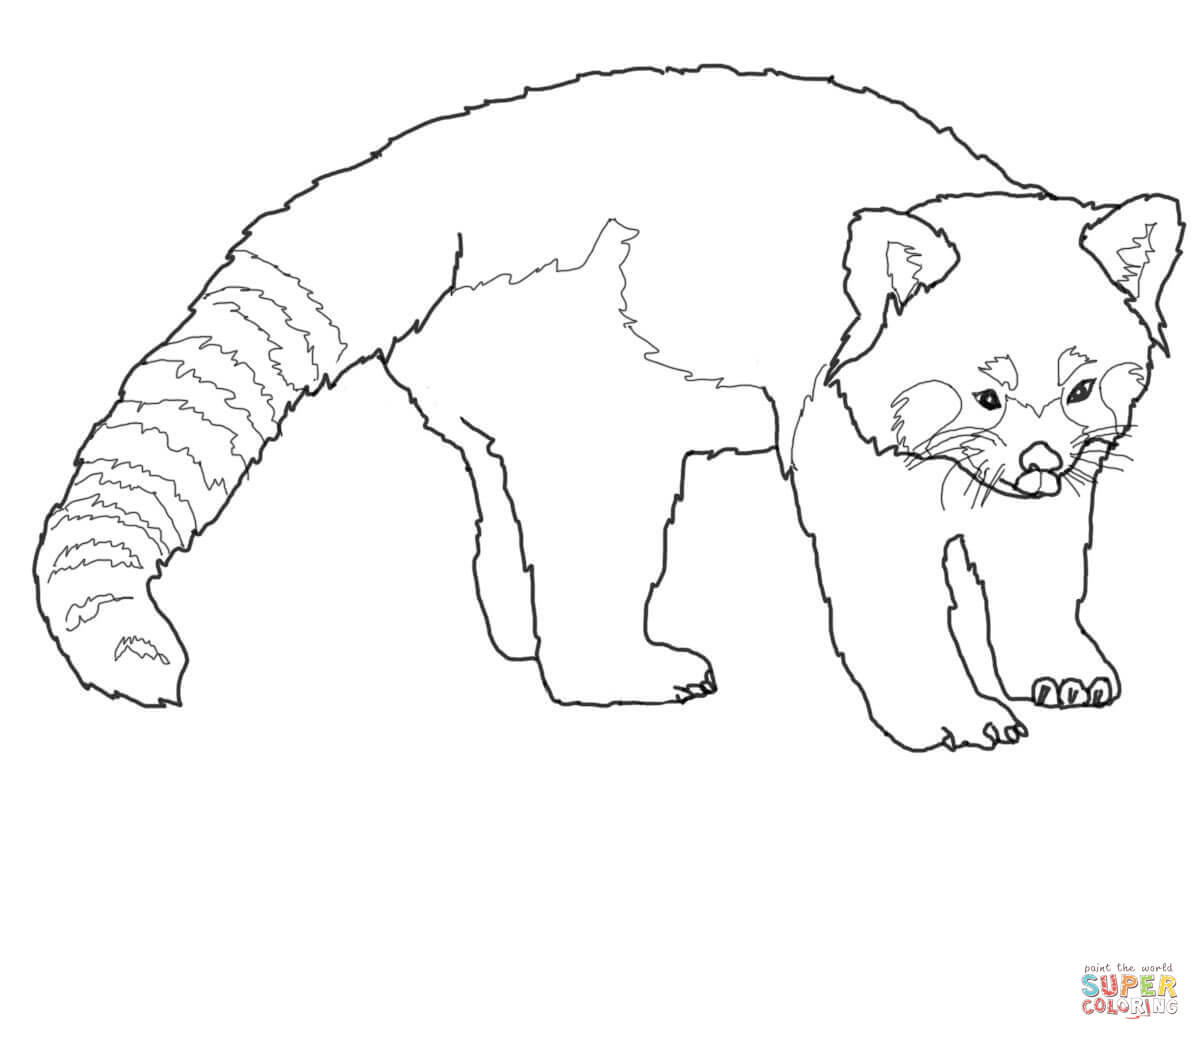 Red Panda clipart black and white #15